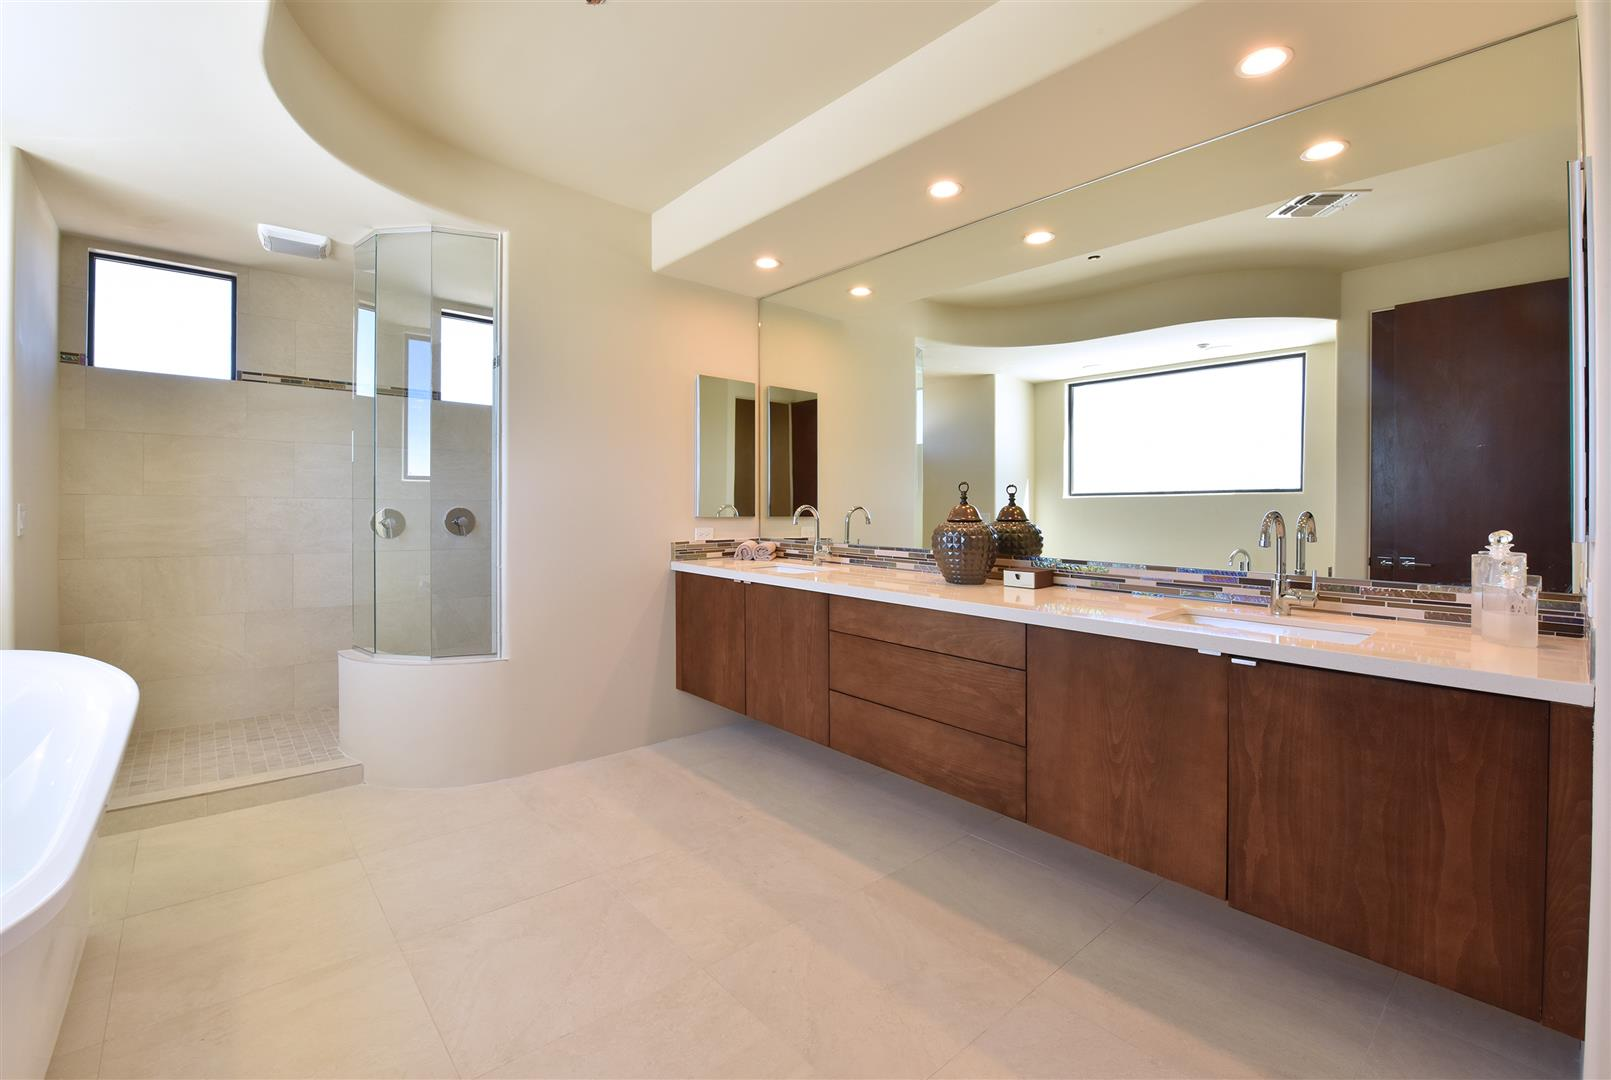 Cabinet And Finish. Manufacturer: Canyon Creek